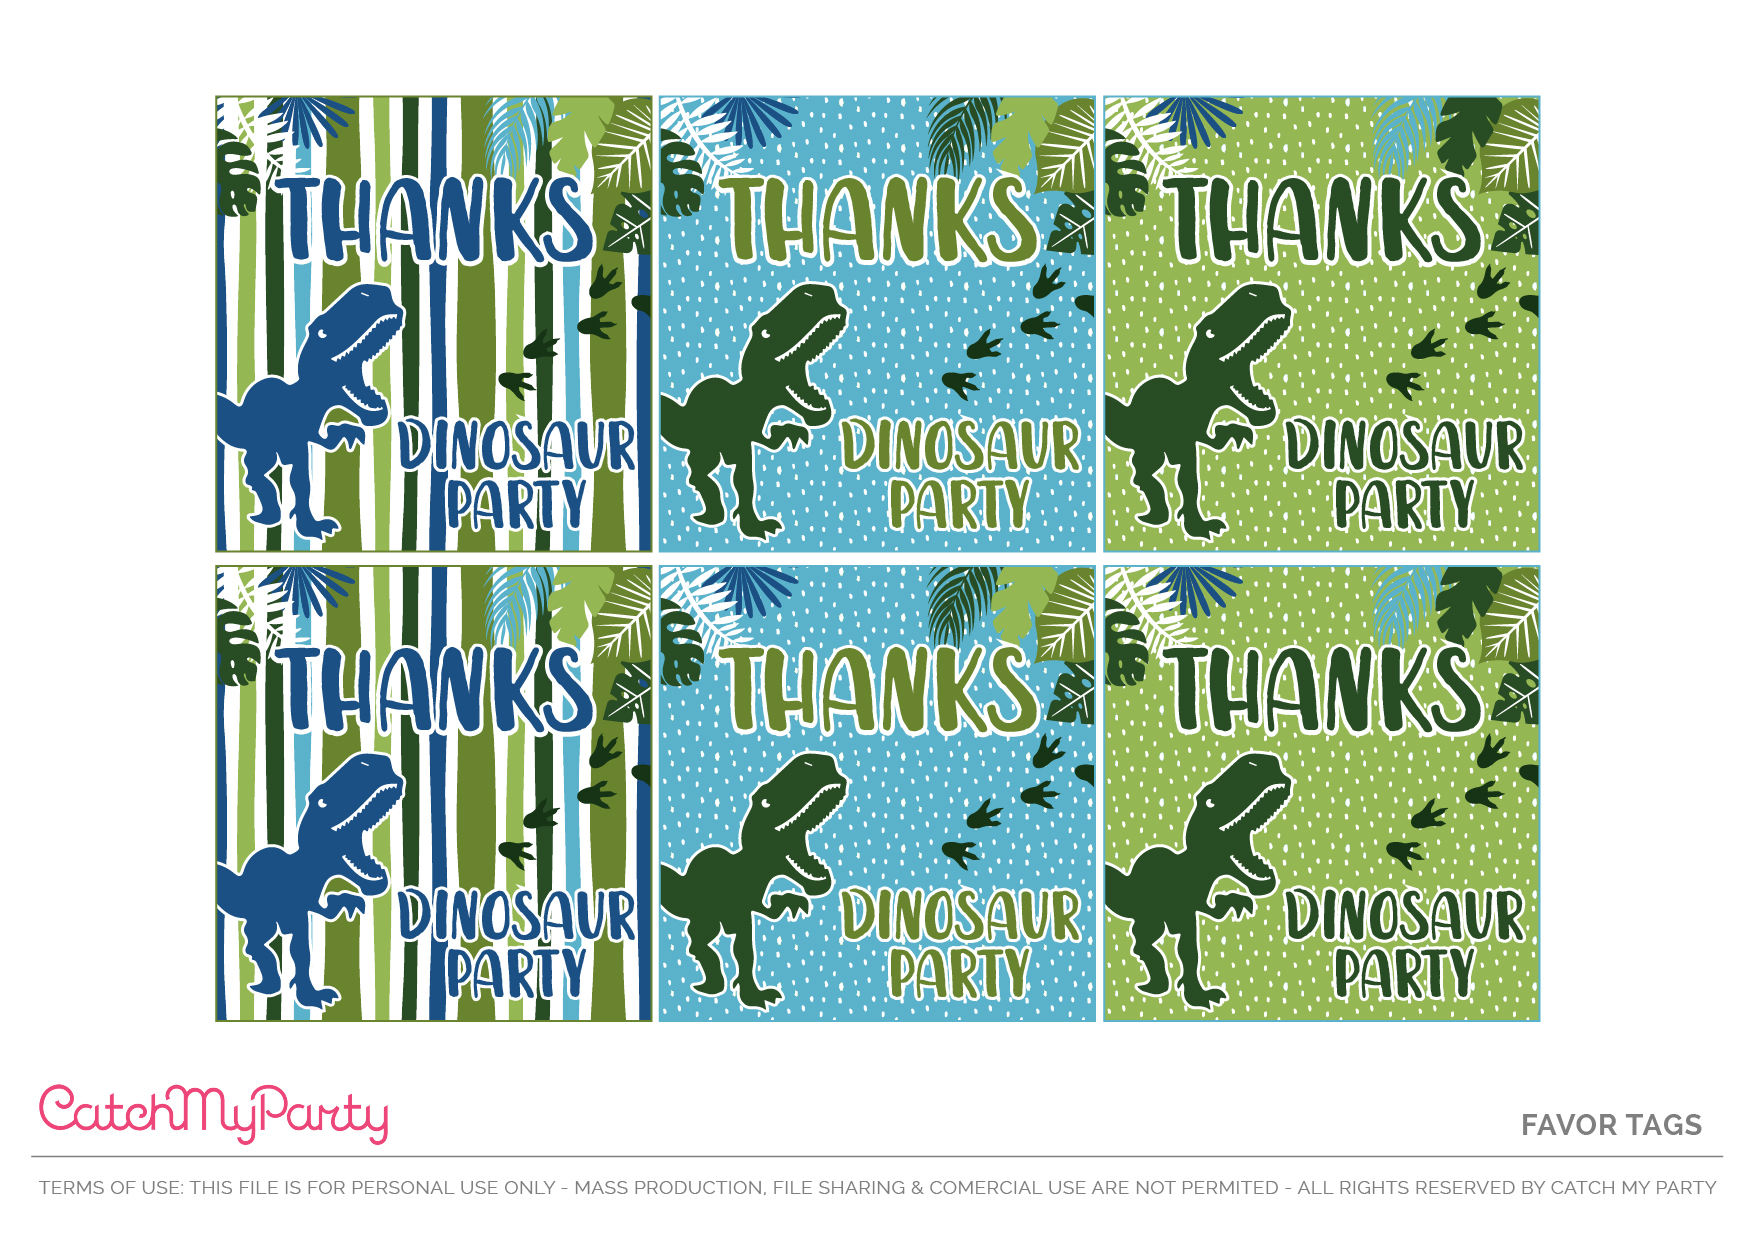 Download These Free Dinosaur Party Printables - Party Favor Tags